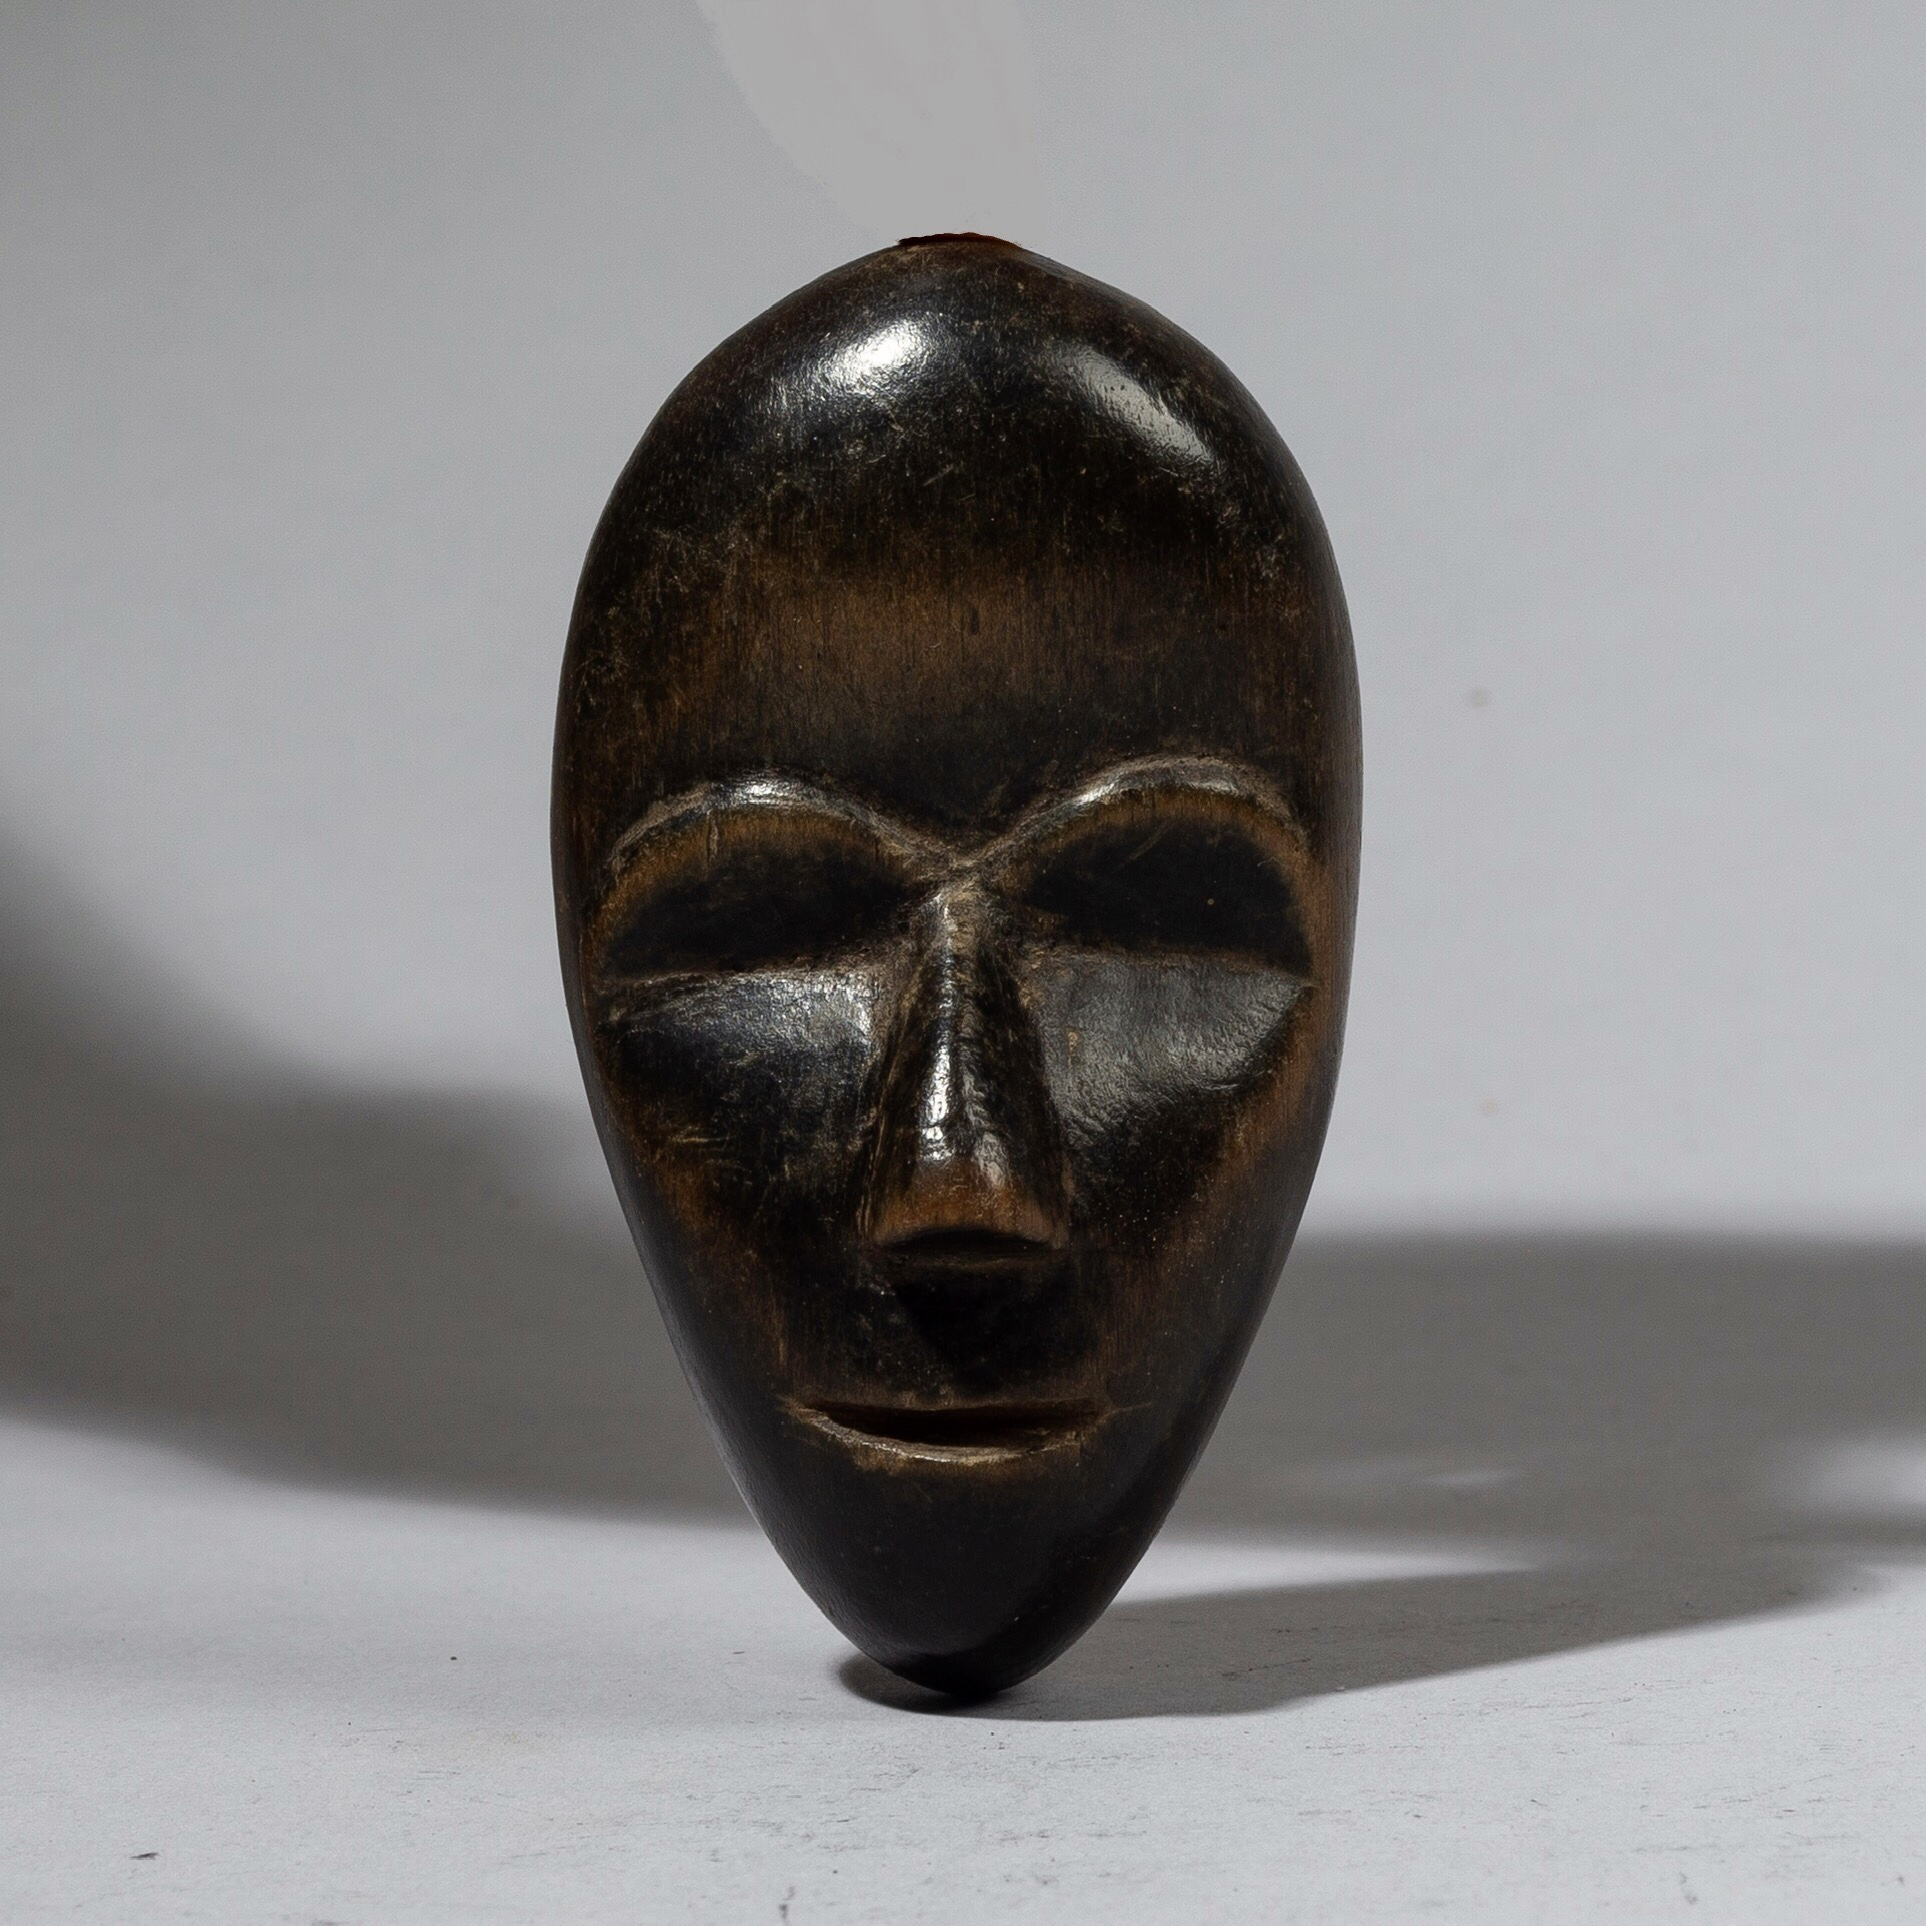 SOLD A SUAVE DAN PASSPORT MASK FROM THE IVORY COAST, W.AFRICA ( No 4463 )